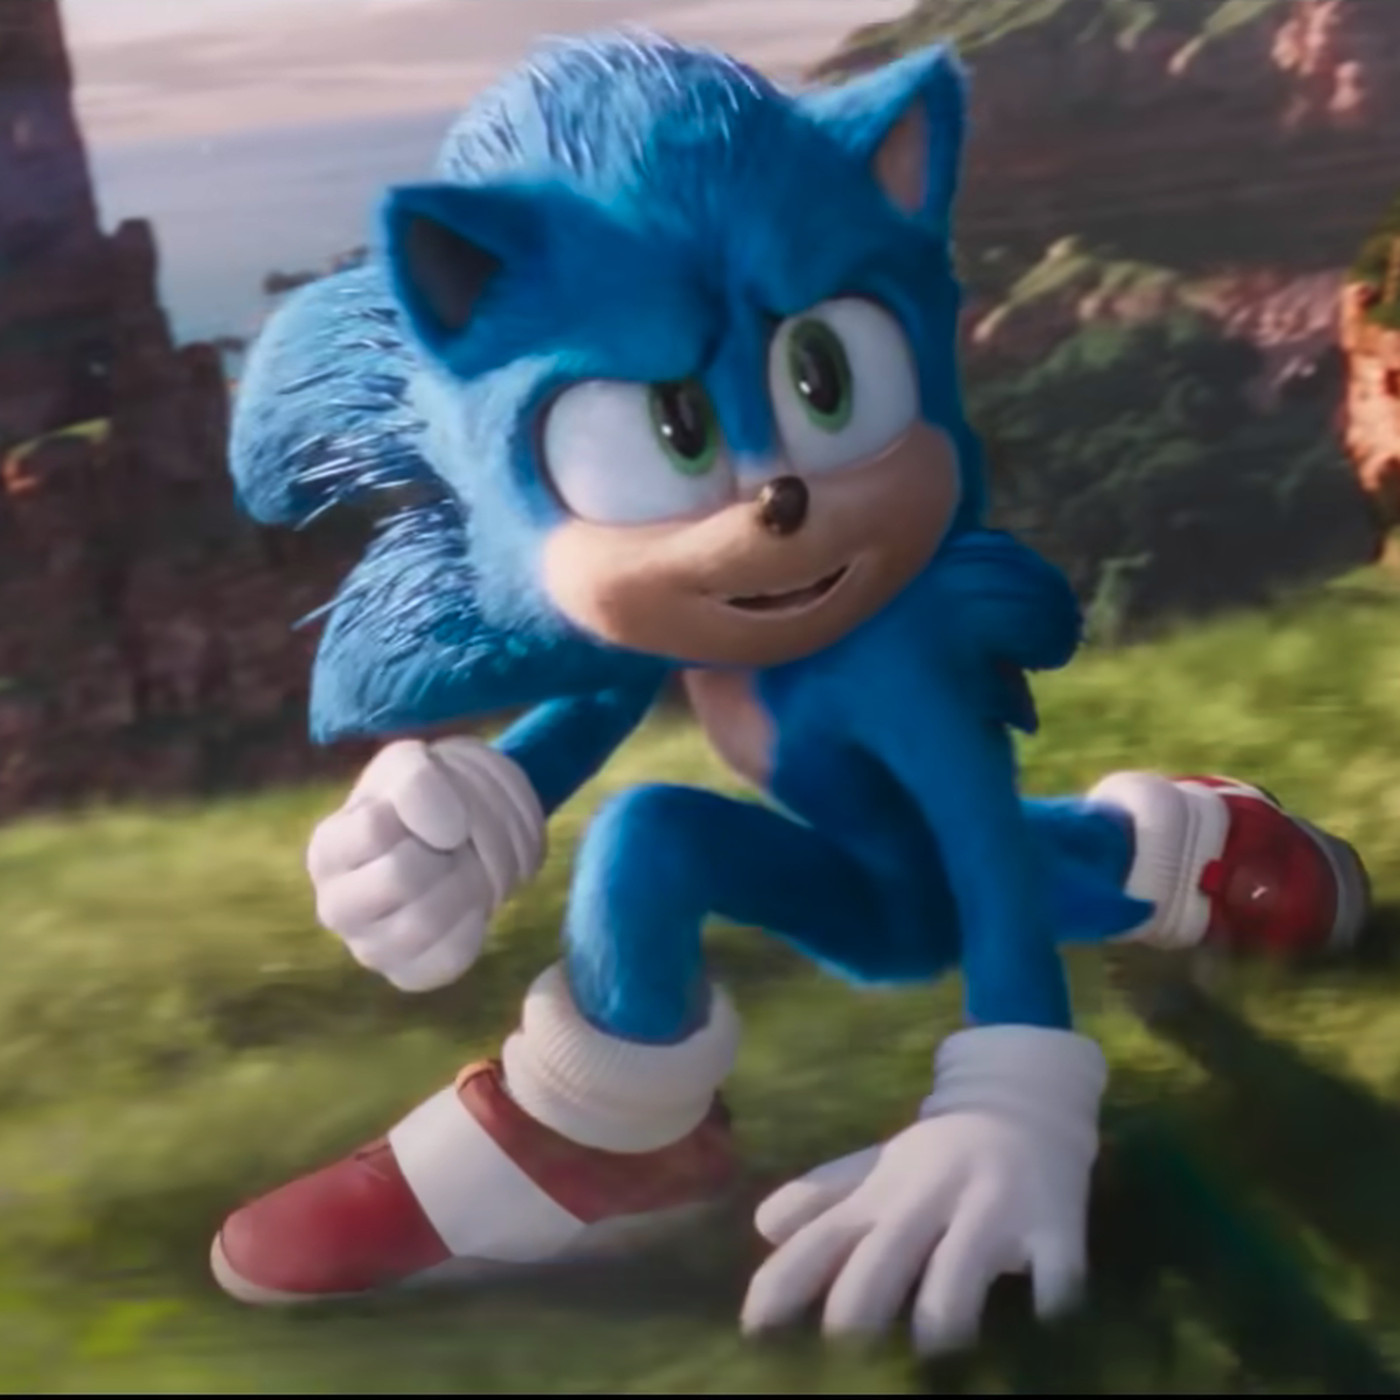 A Sequel To The Sonic The Hedgehog Movie Is In Development The Verge